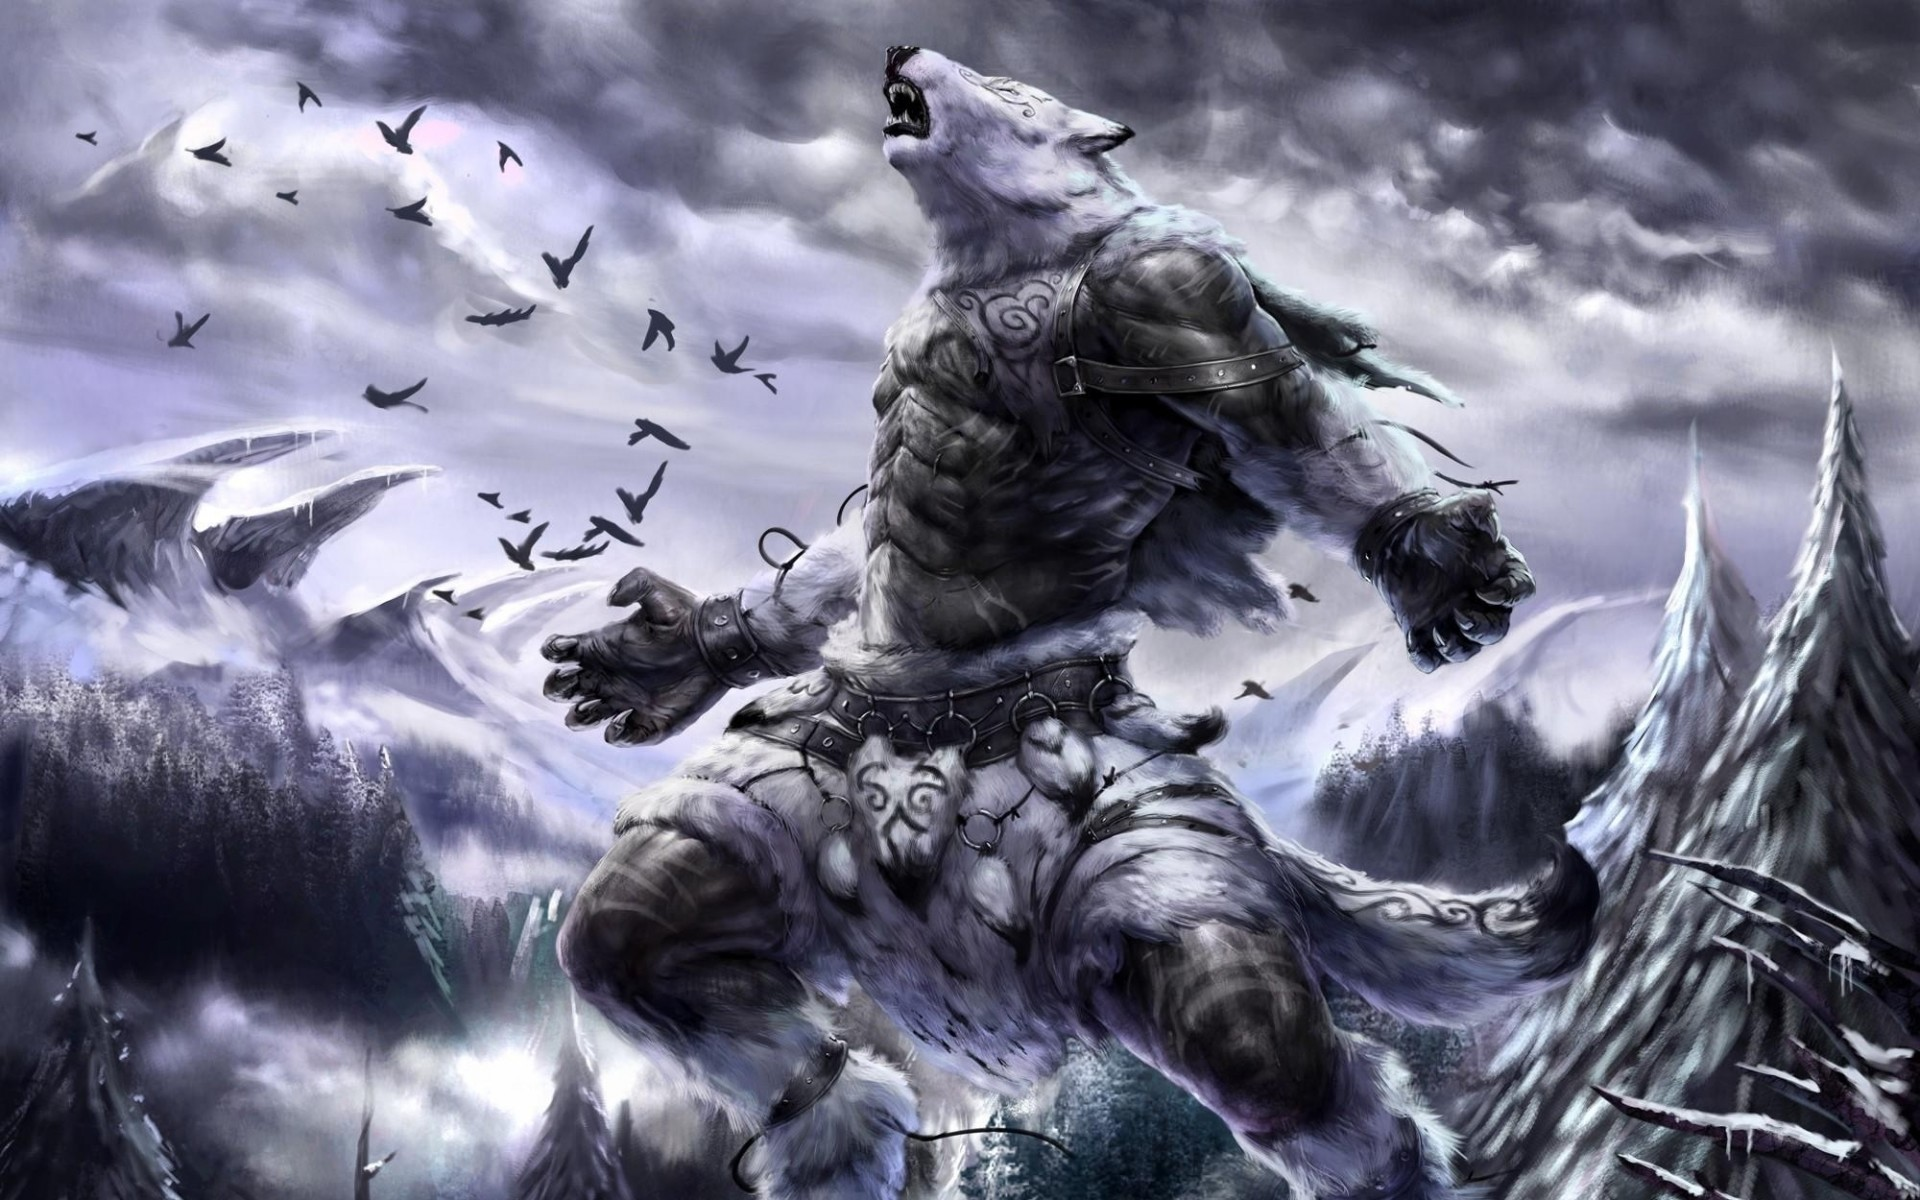 Res: 1920x1200, lymronia, forest, landscapes, monster,cartoon wallpapers, sky, download  comic wallpapers, fantasy, widescreen, mountains, birds, fur, armor,  winter, snow, ...